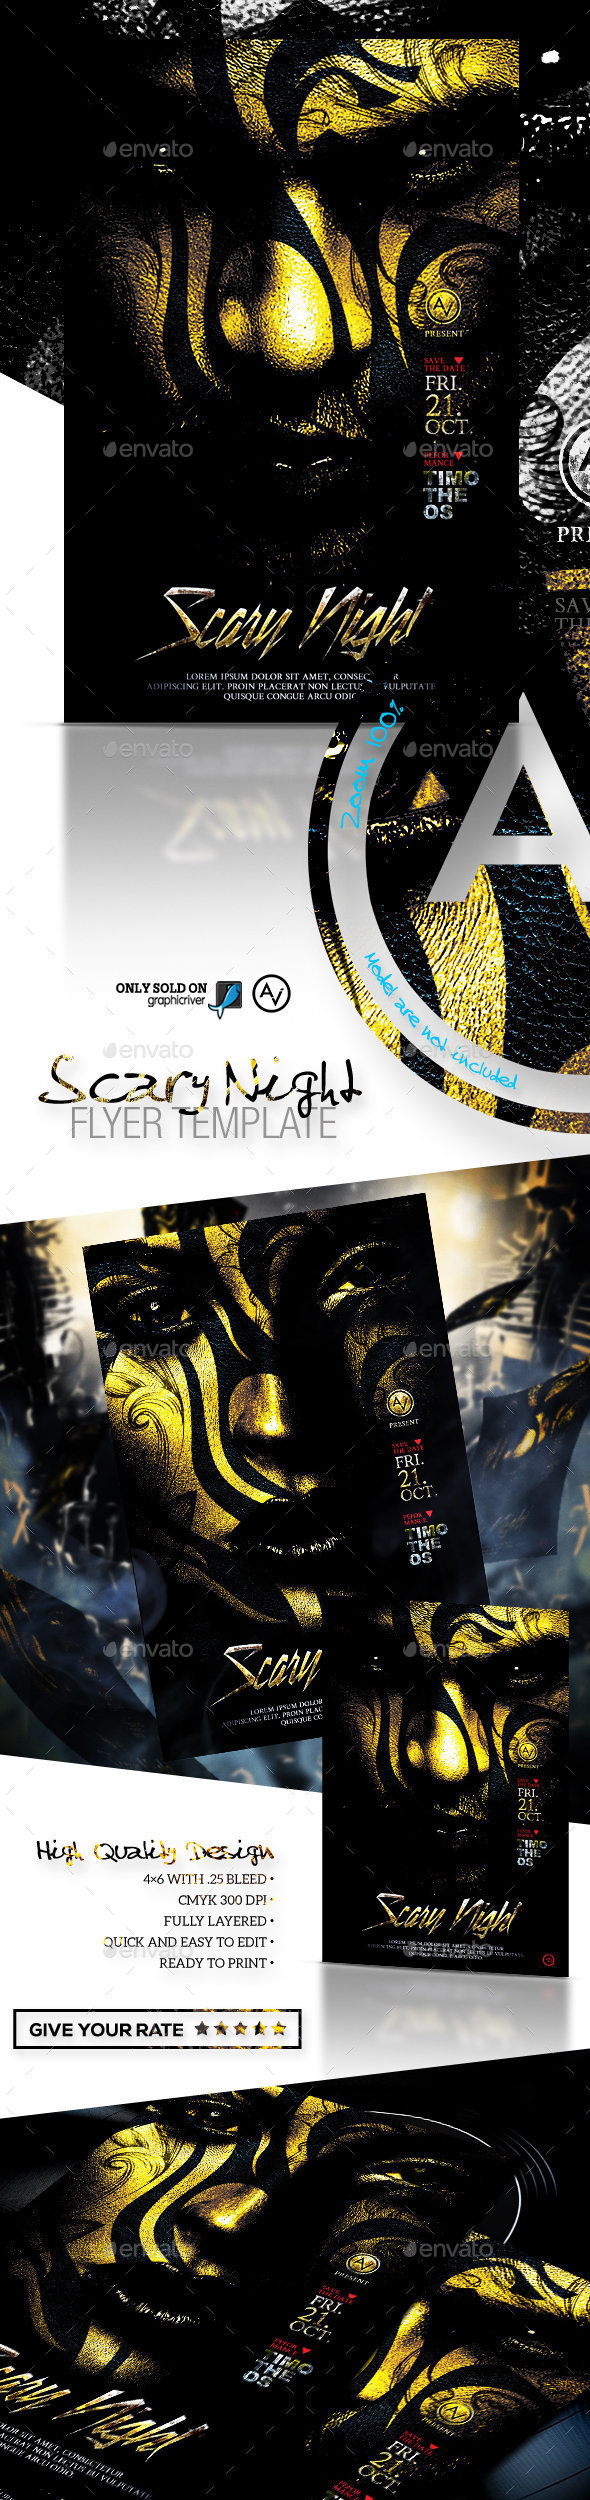 Scary Night Flyer Template - Clubs & Parties Events